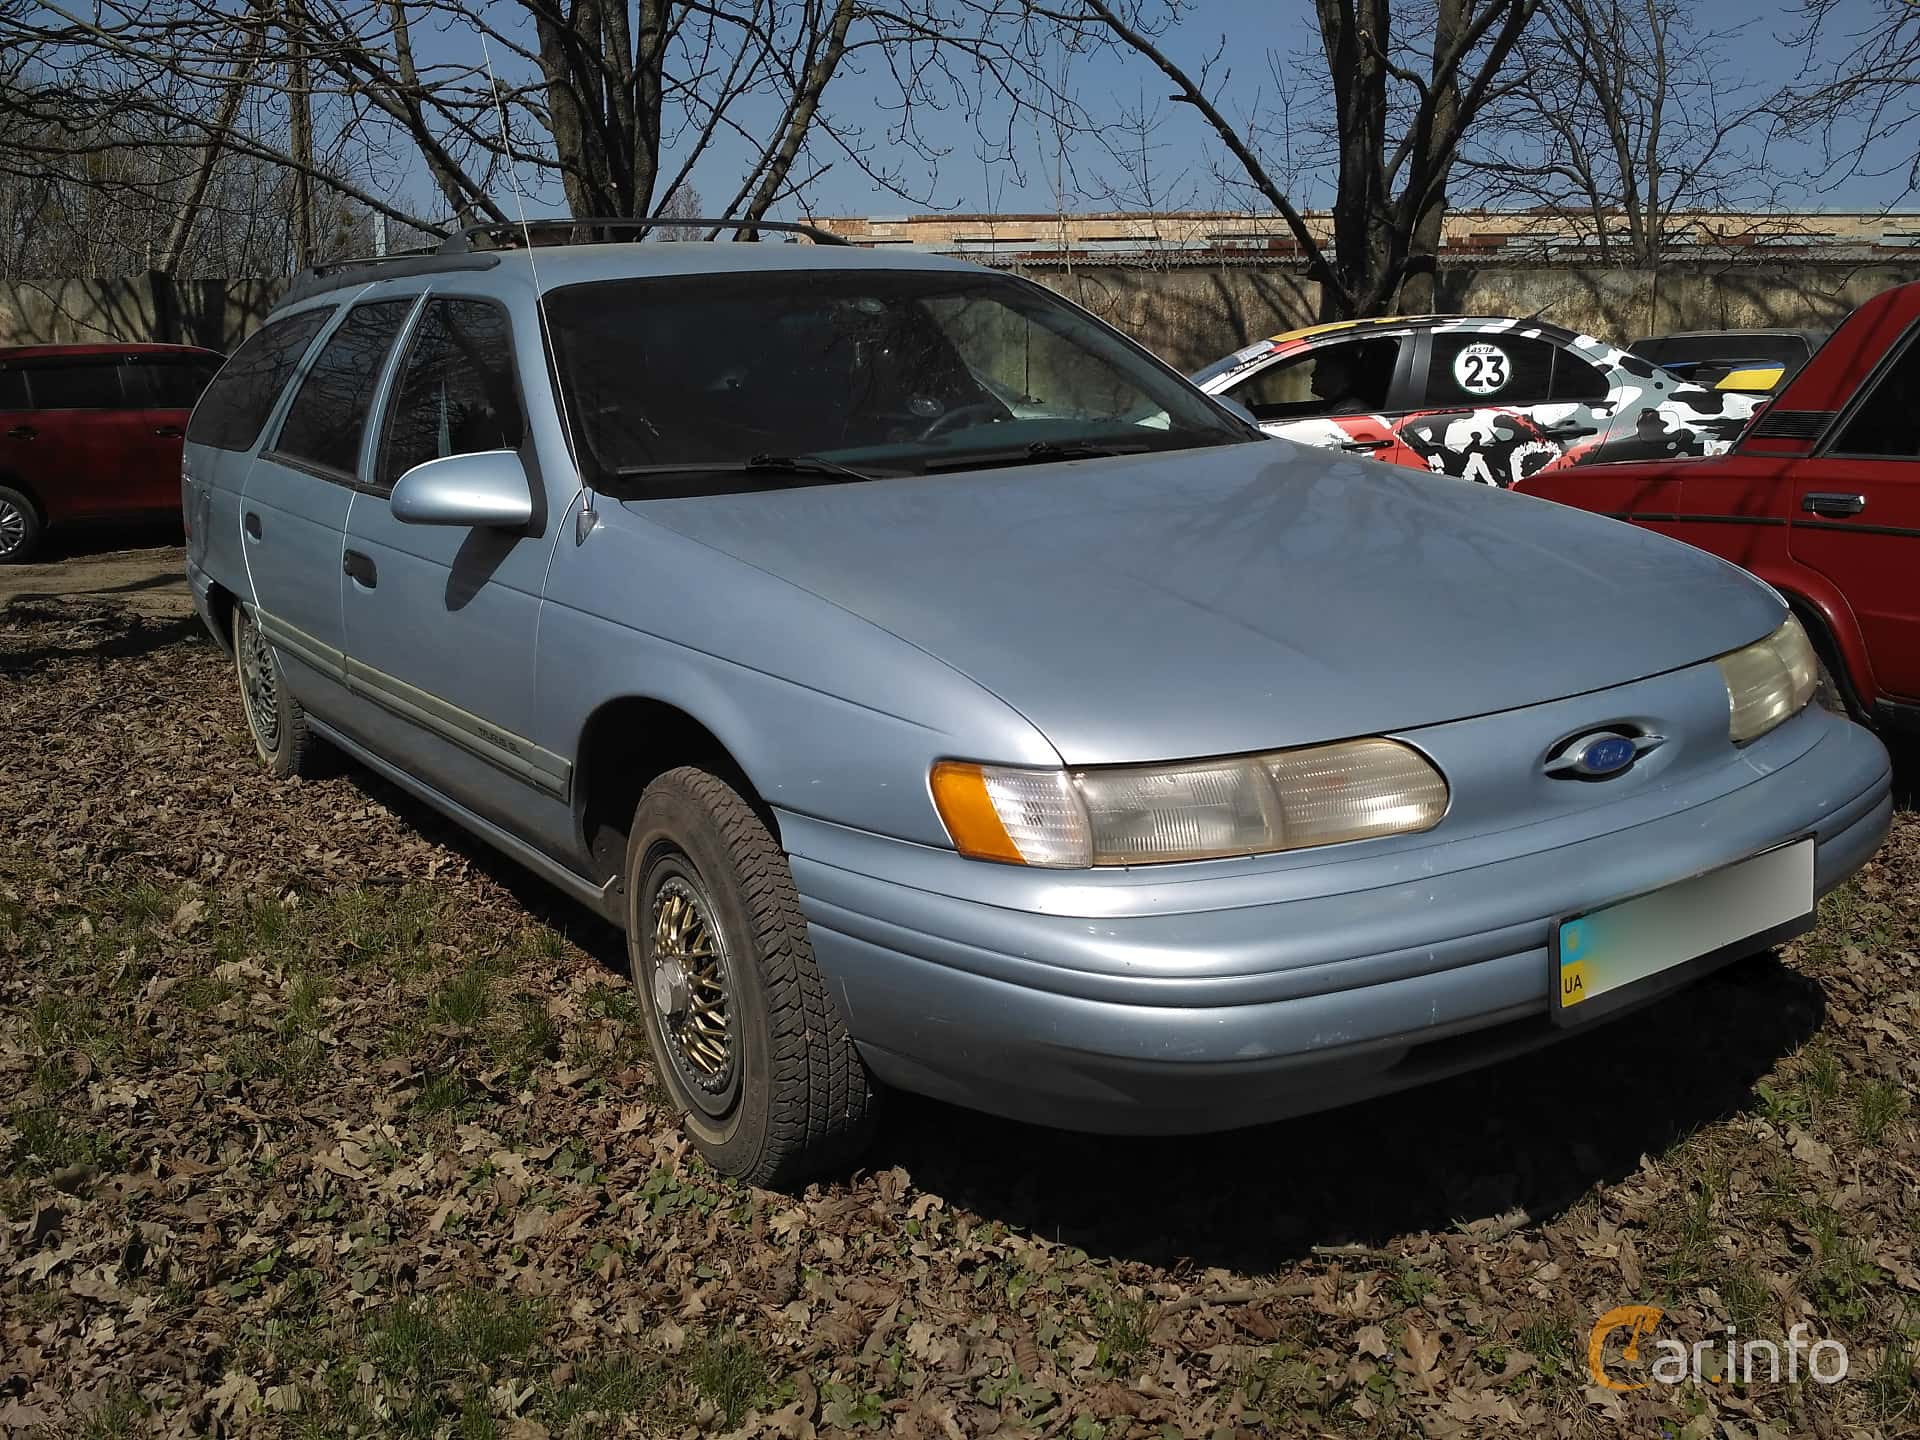 Ford Taurus Wagon 1992 at Ltava Time Attack 1st Stage